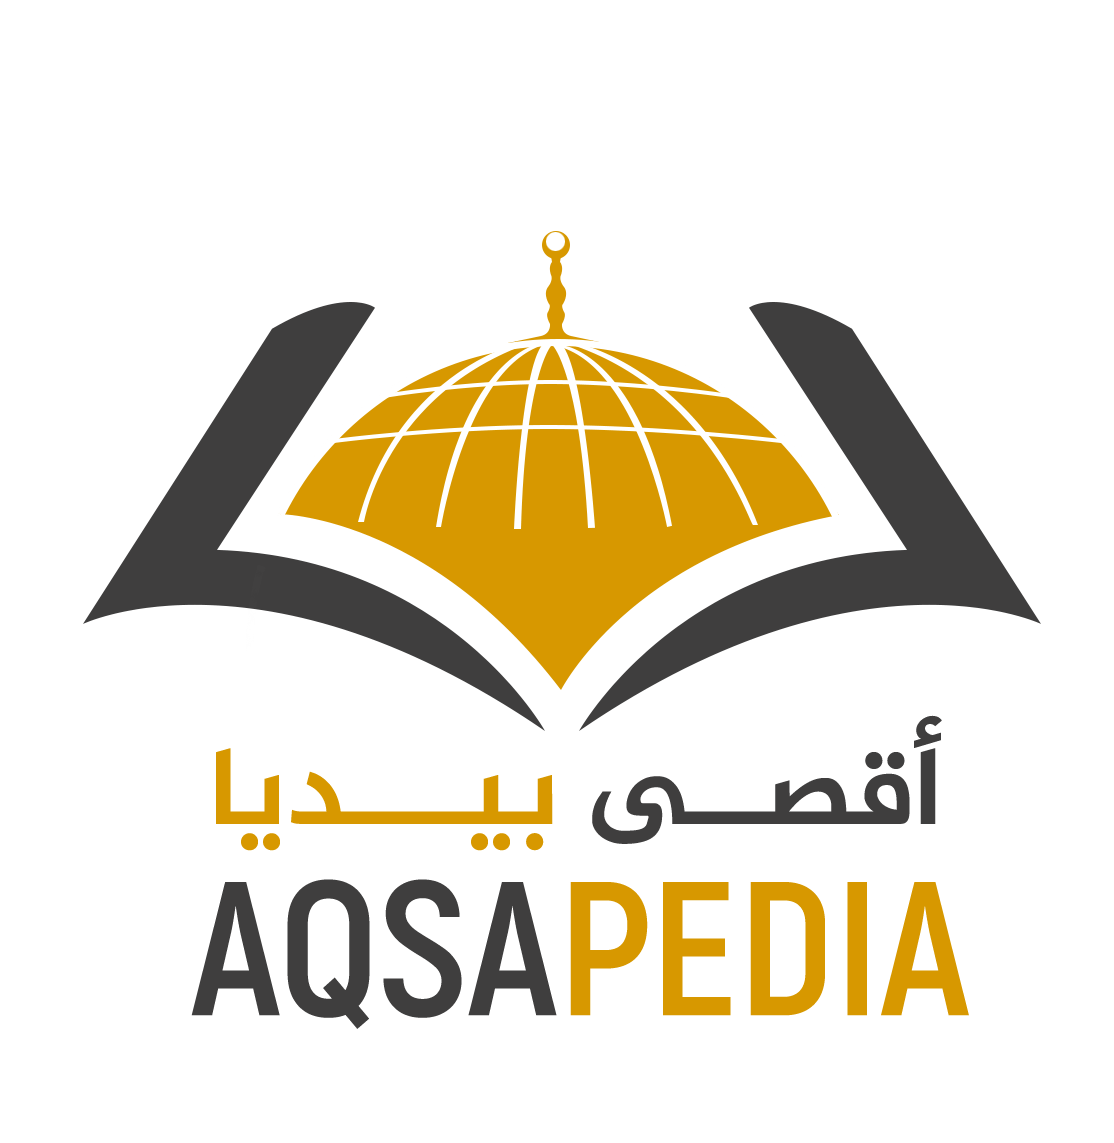 Aqsapedia